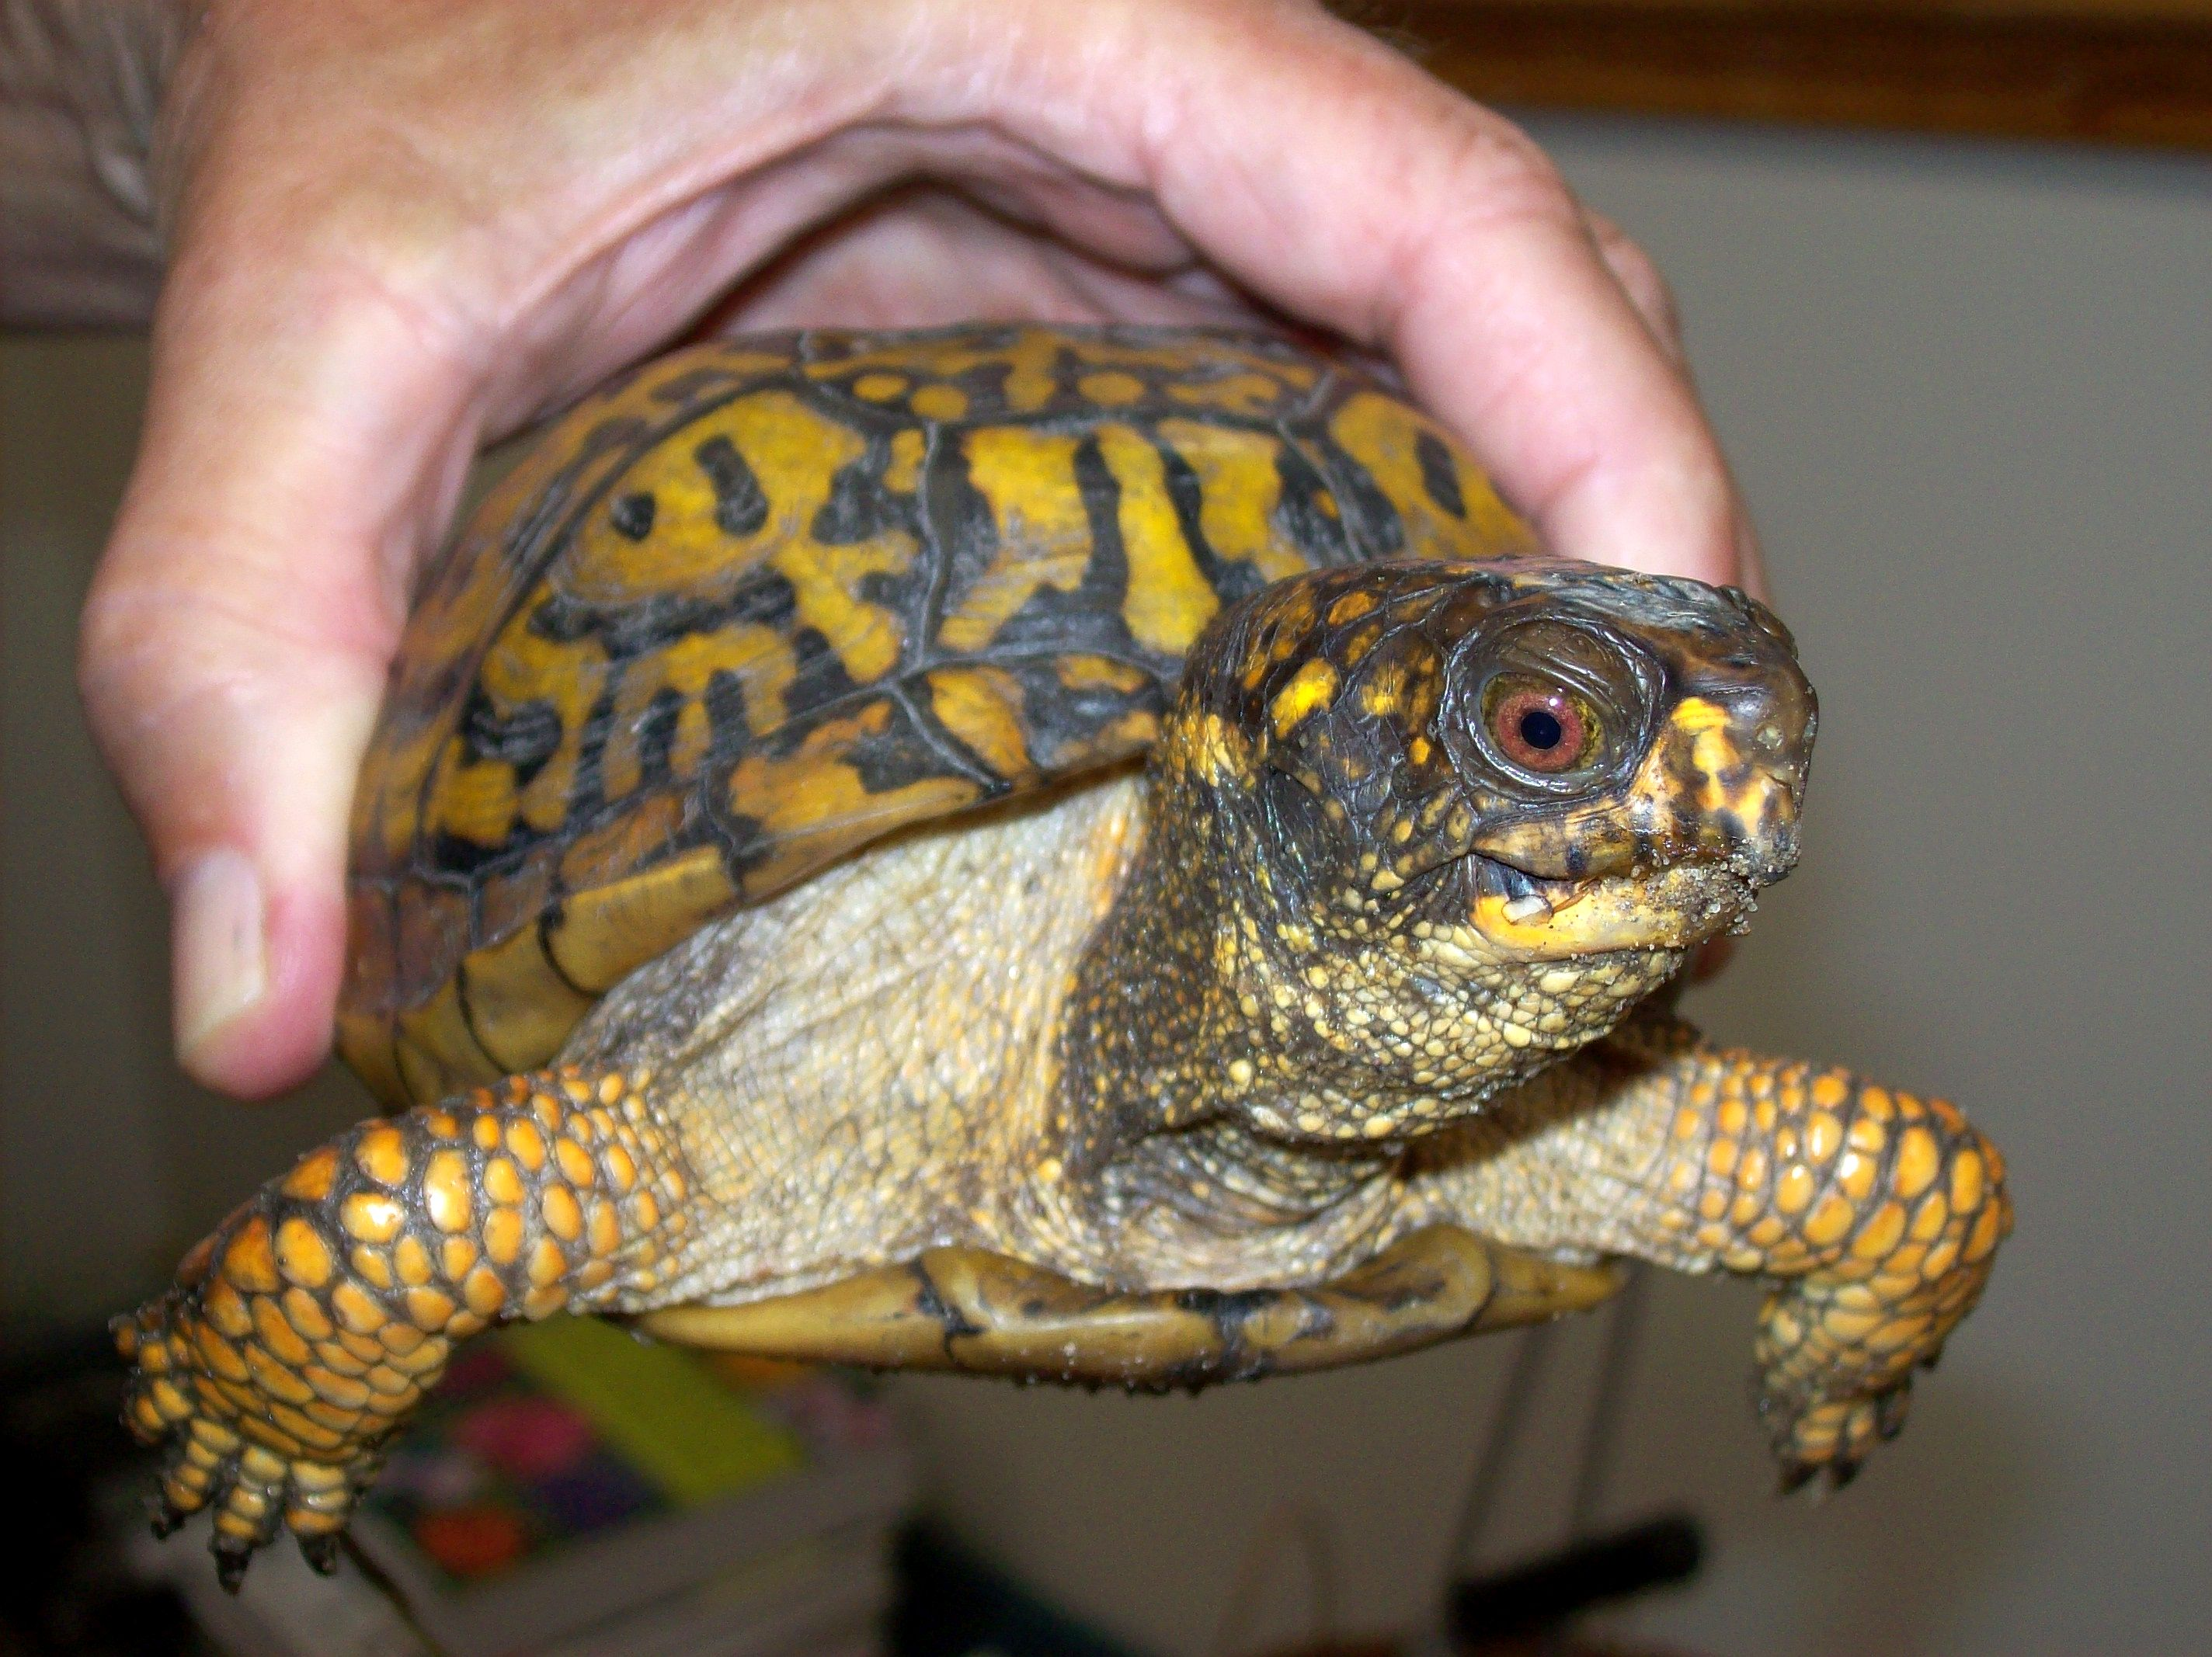 This turtle was first marked in 1989 when it was estimated to be at least 30 years old. It was seen again this past summer, so it's very likely more than 60 years old.